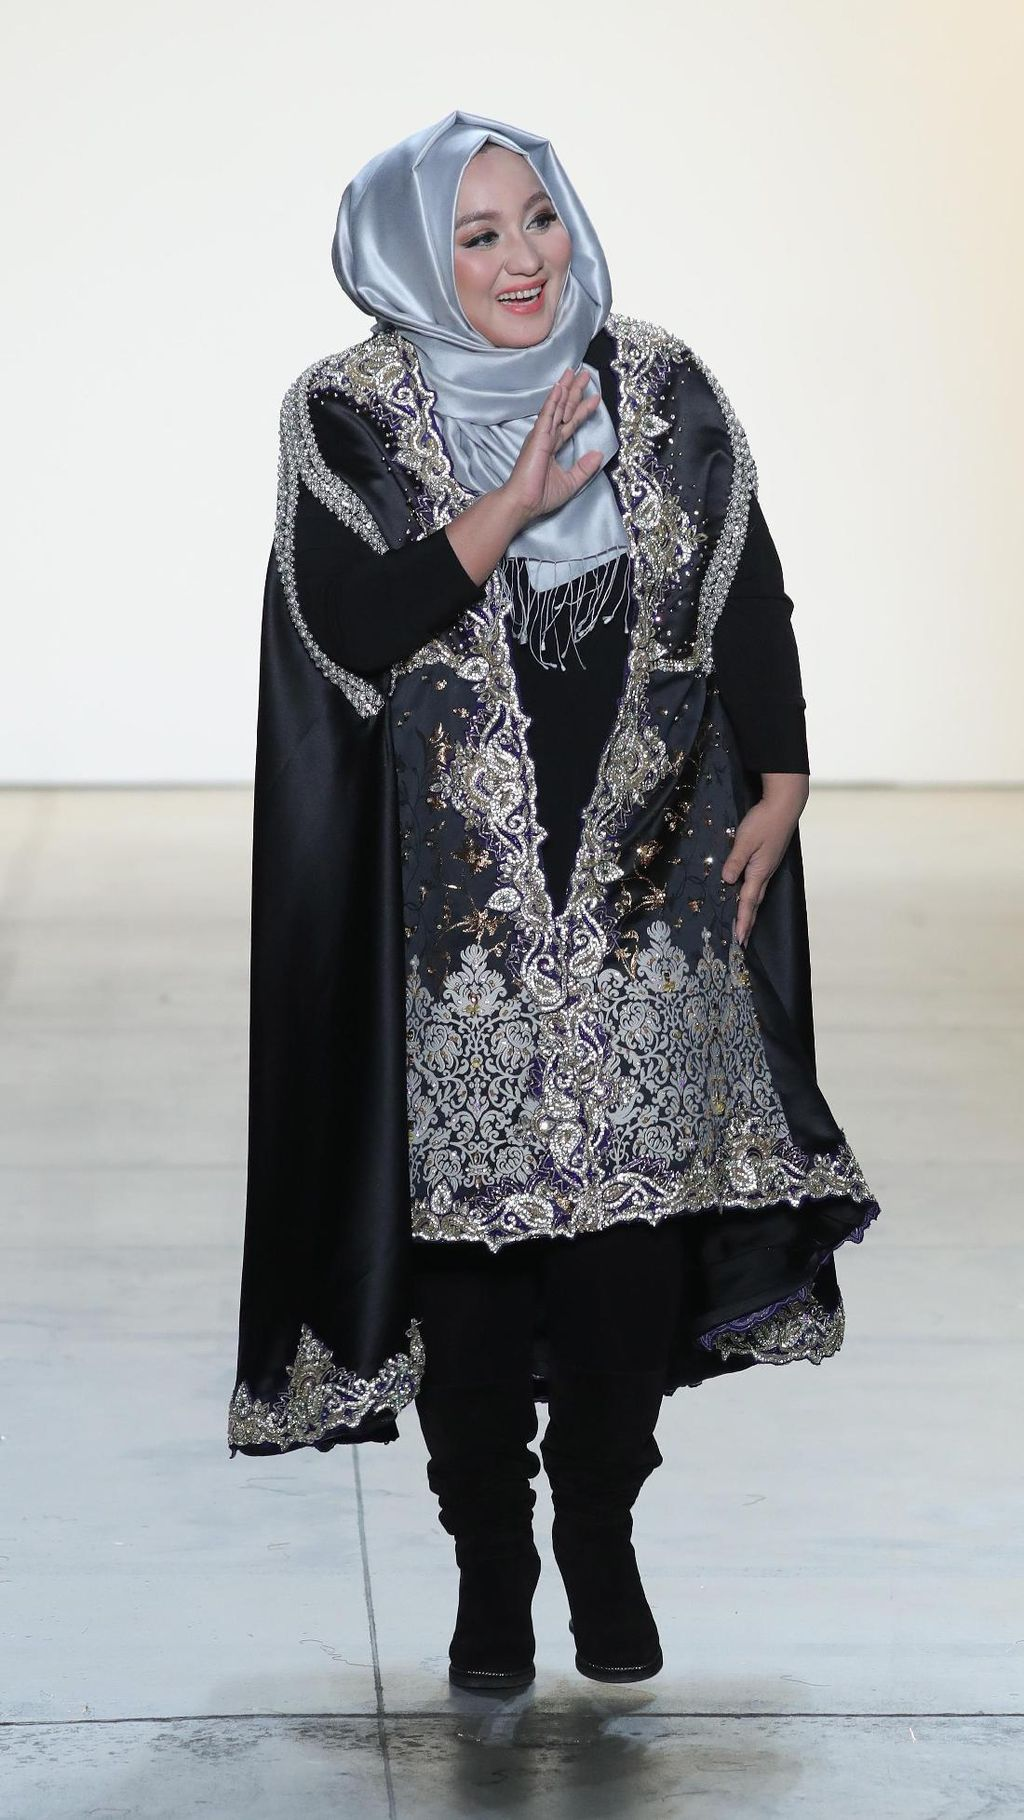 Tangis Haru Anniesa Hasibuan Pasca Tampil di New York Fashion Week